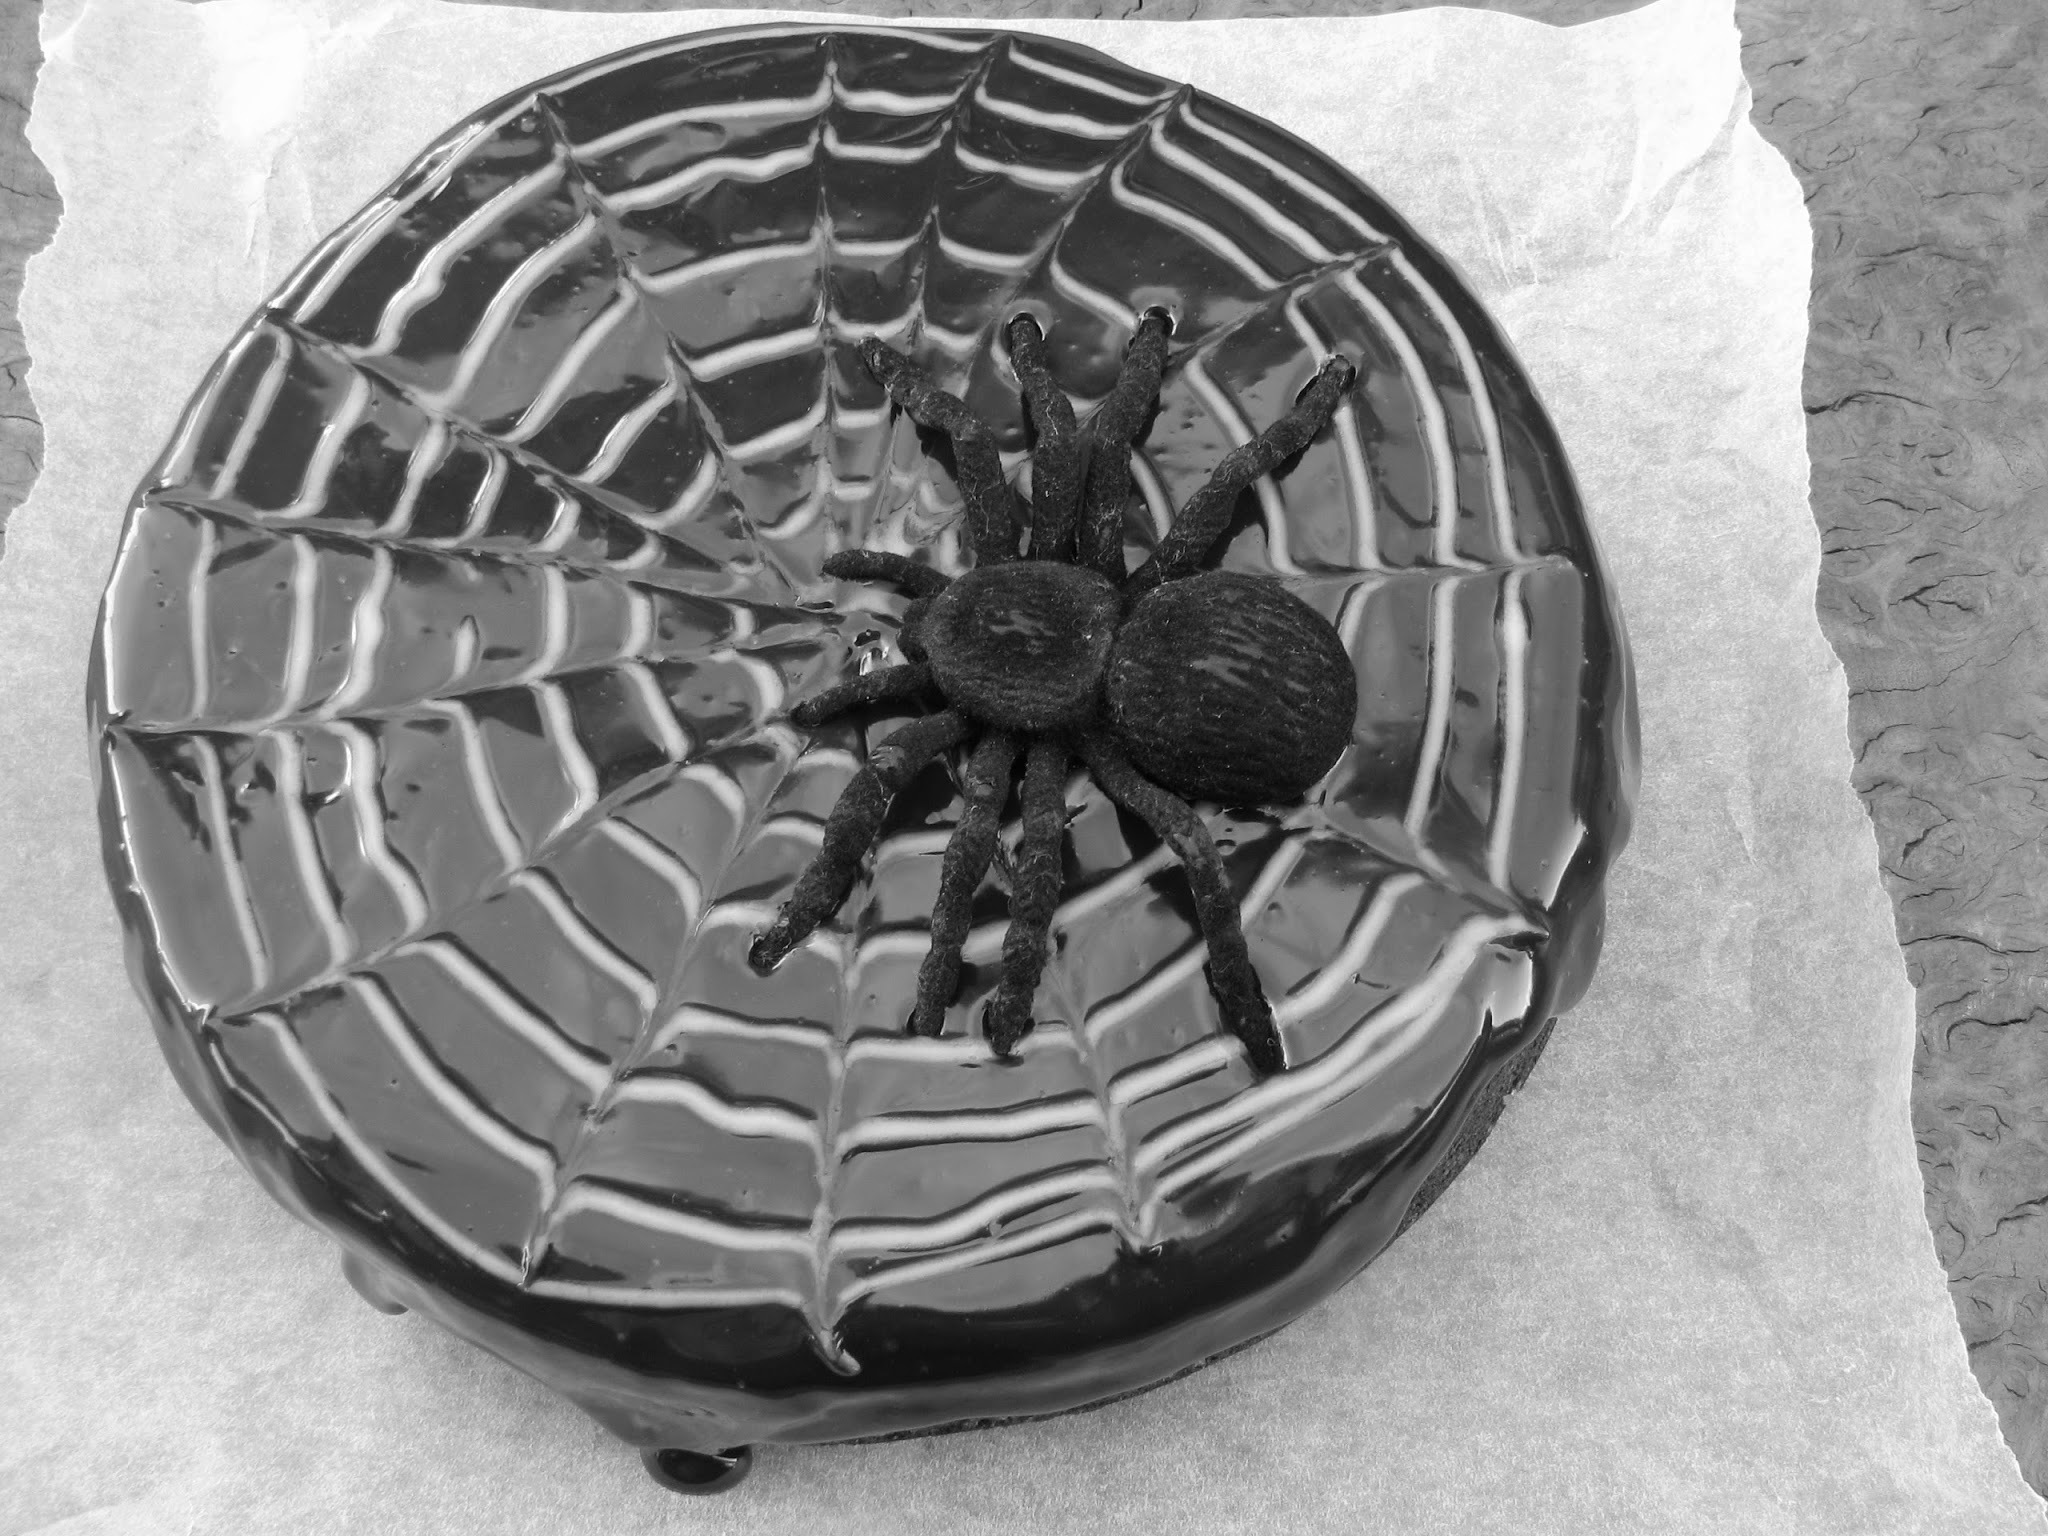 gluten-free chocolate spider-web cake recipe for my little man...